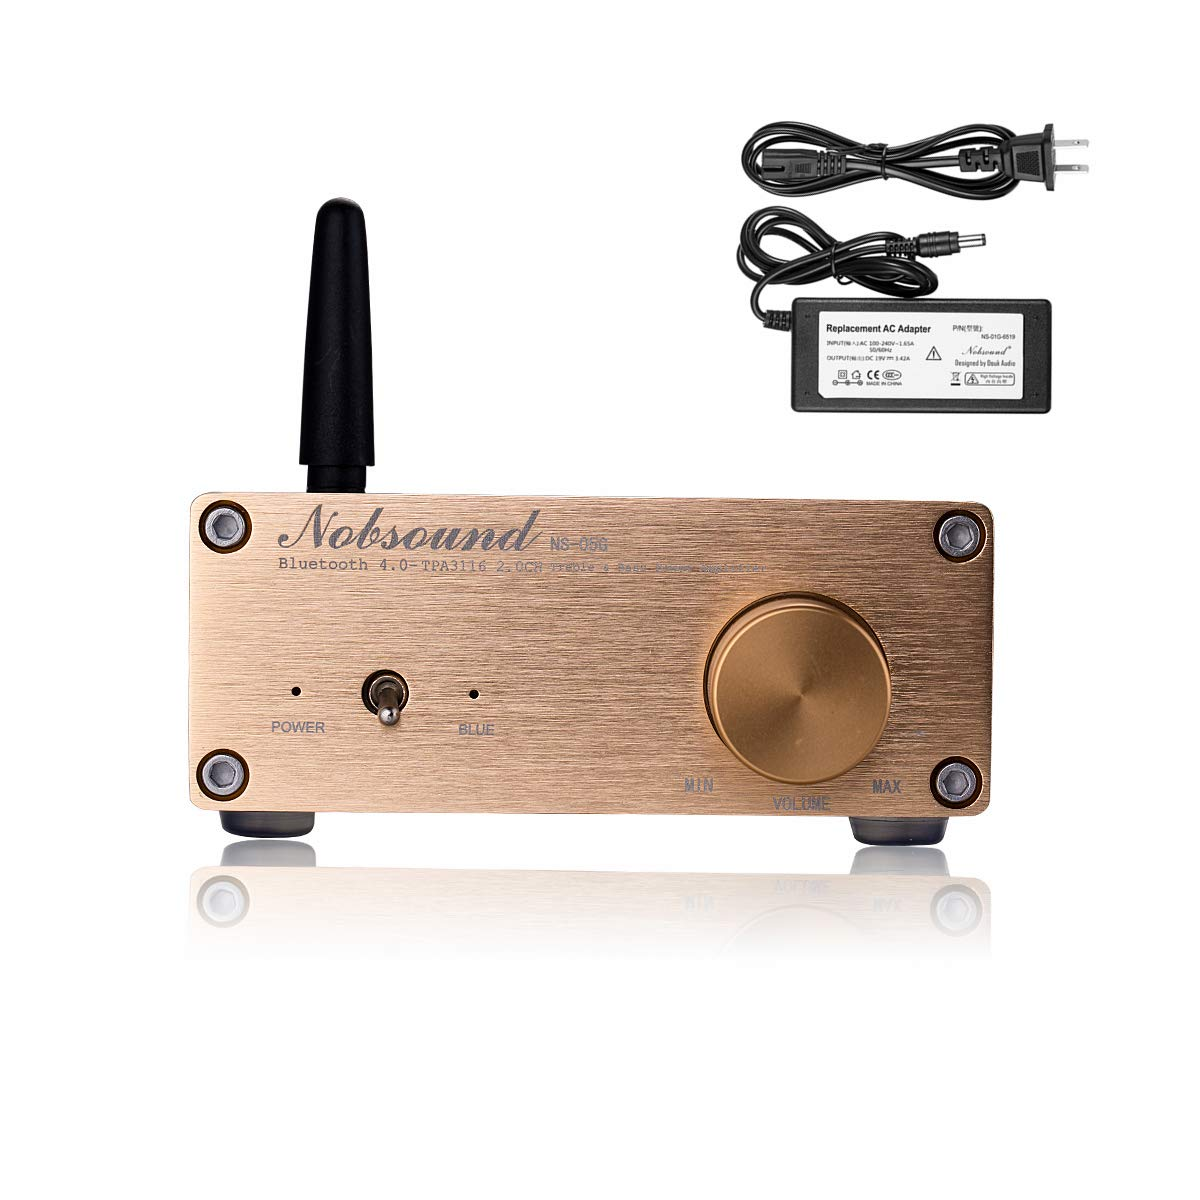 Nobsound NS-05G PRO 100W (50W x 2) Bluetooth 4.0 Power Amplifier Hi-Fi Stereo Class D Mini Digital Amp Home Speaker Audio System 2.0 Channel TPA3116D2